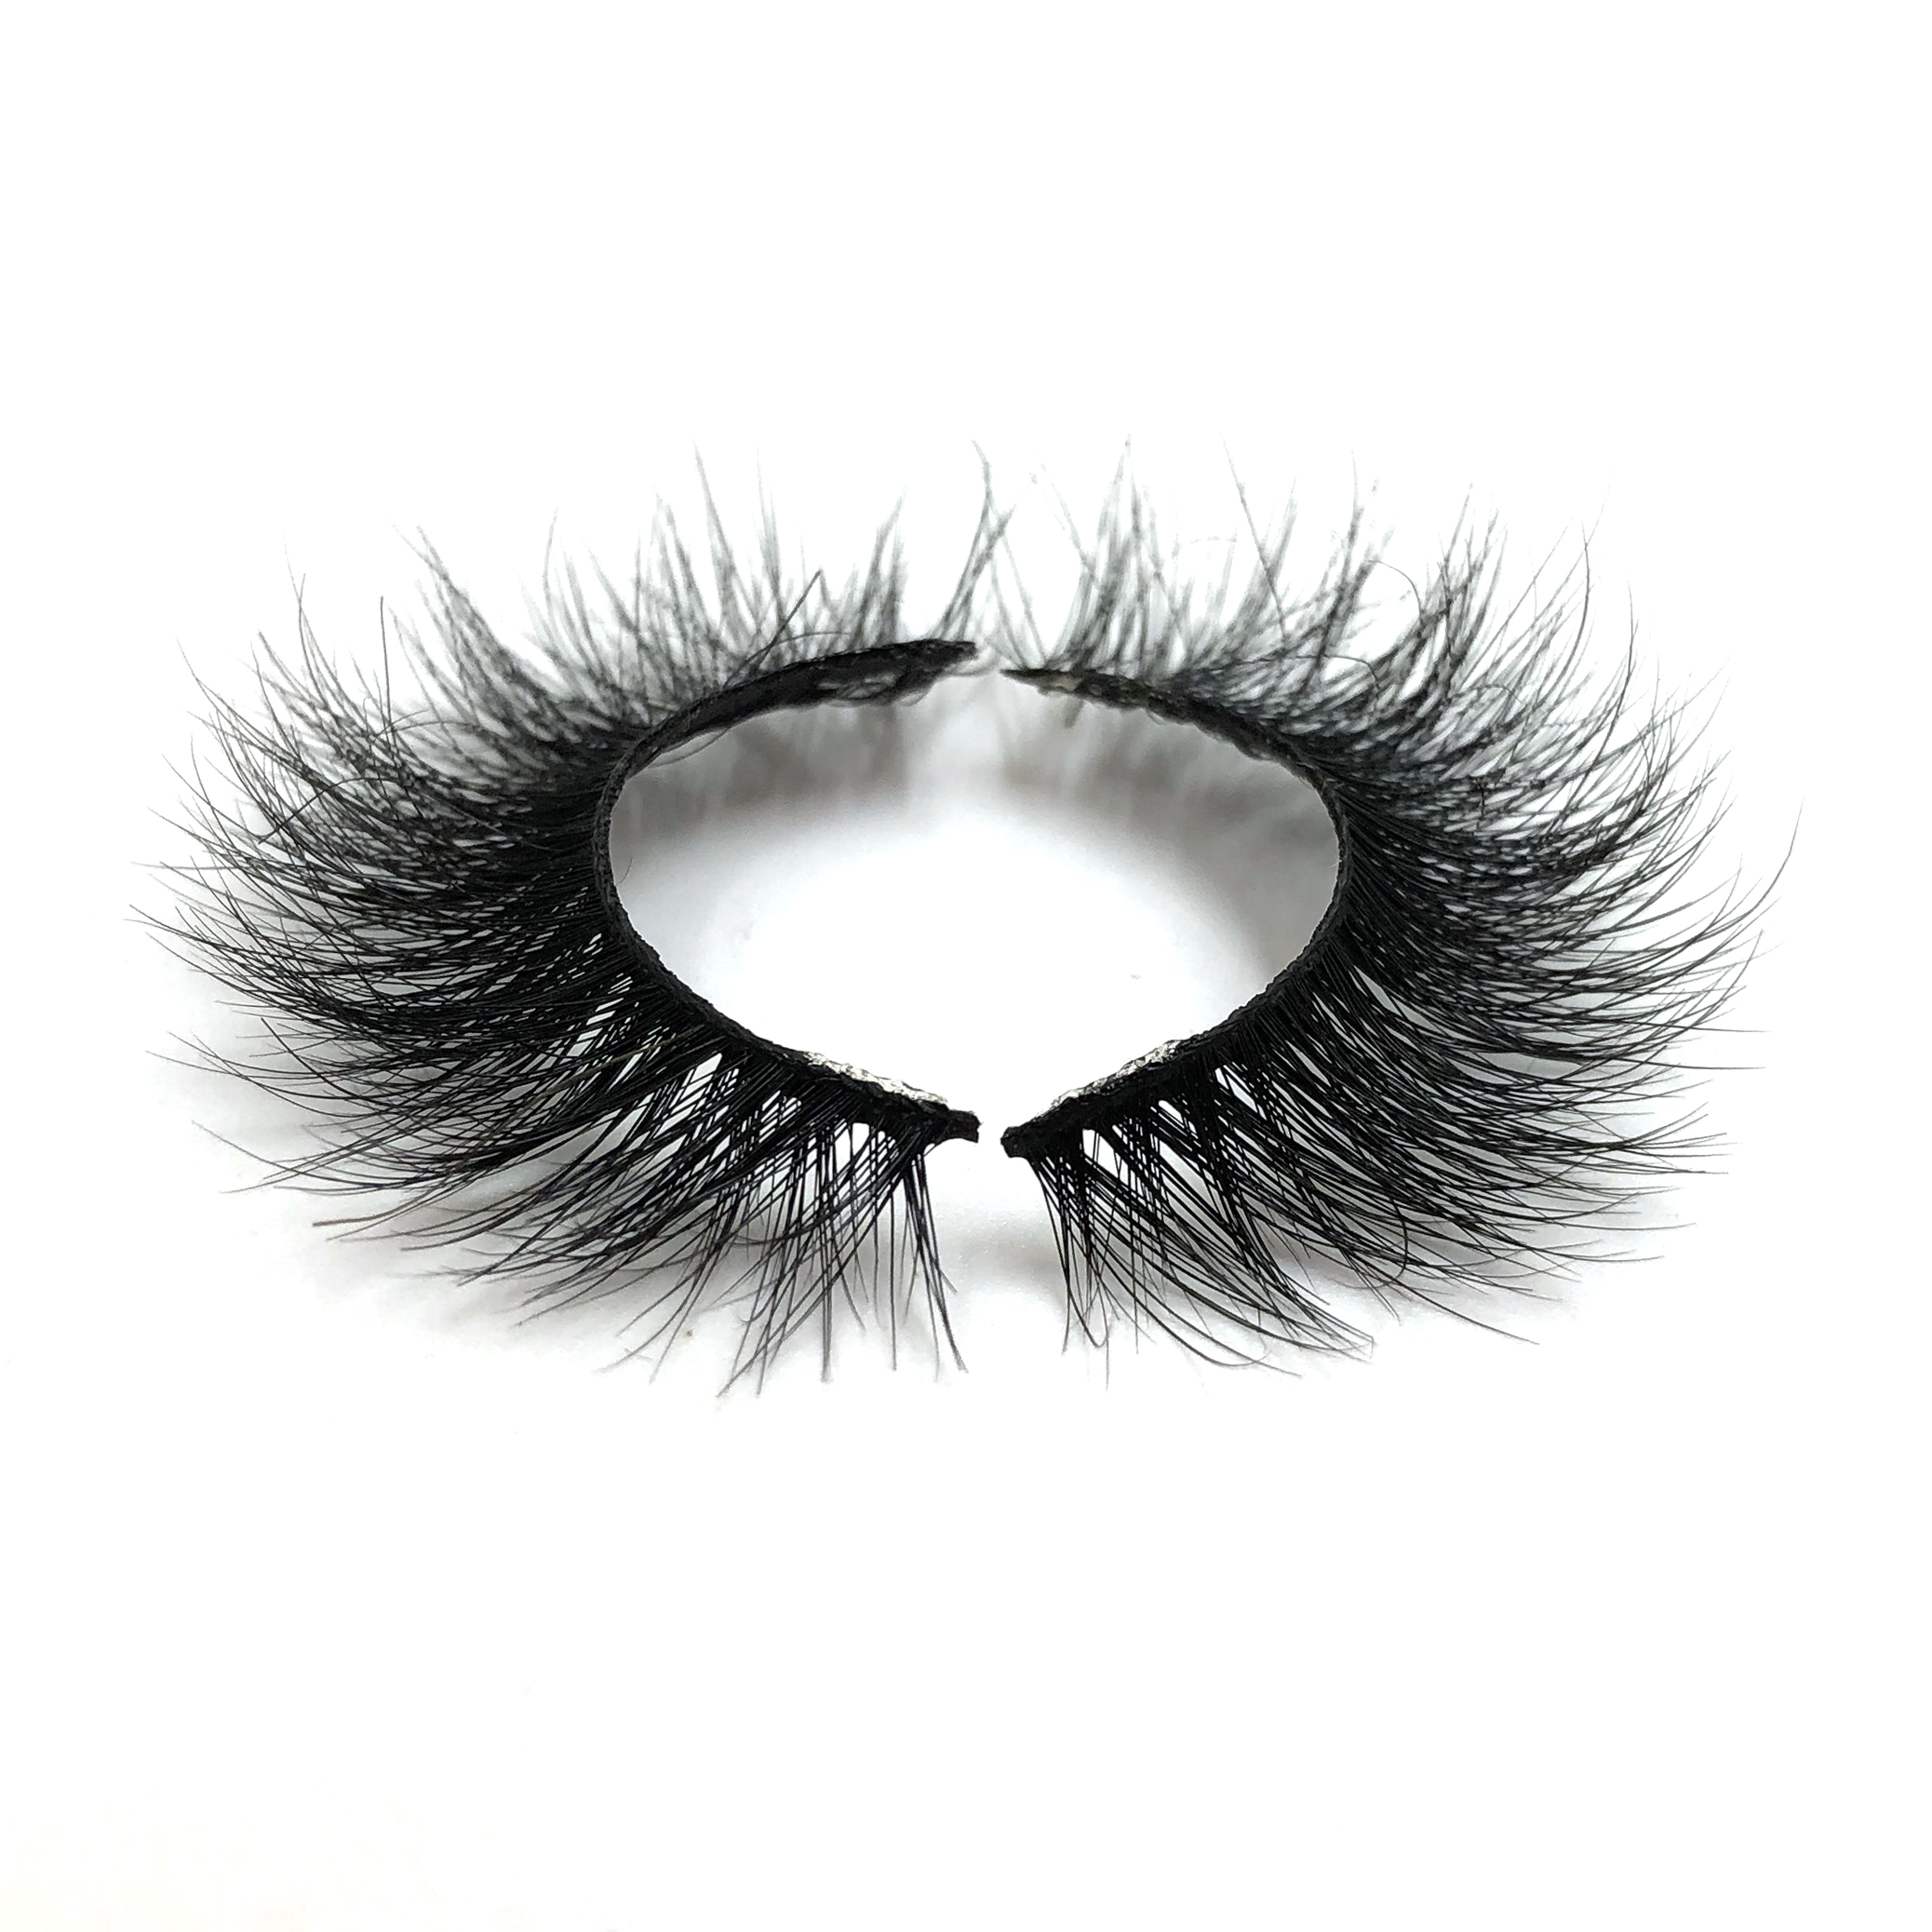 Create Your Own Brand Real 3d Mink Eyelashes Handmade False Eye Lashes Private Label Custom Packaging Box 3d Mink Lashes, Natural black